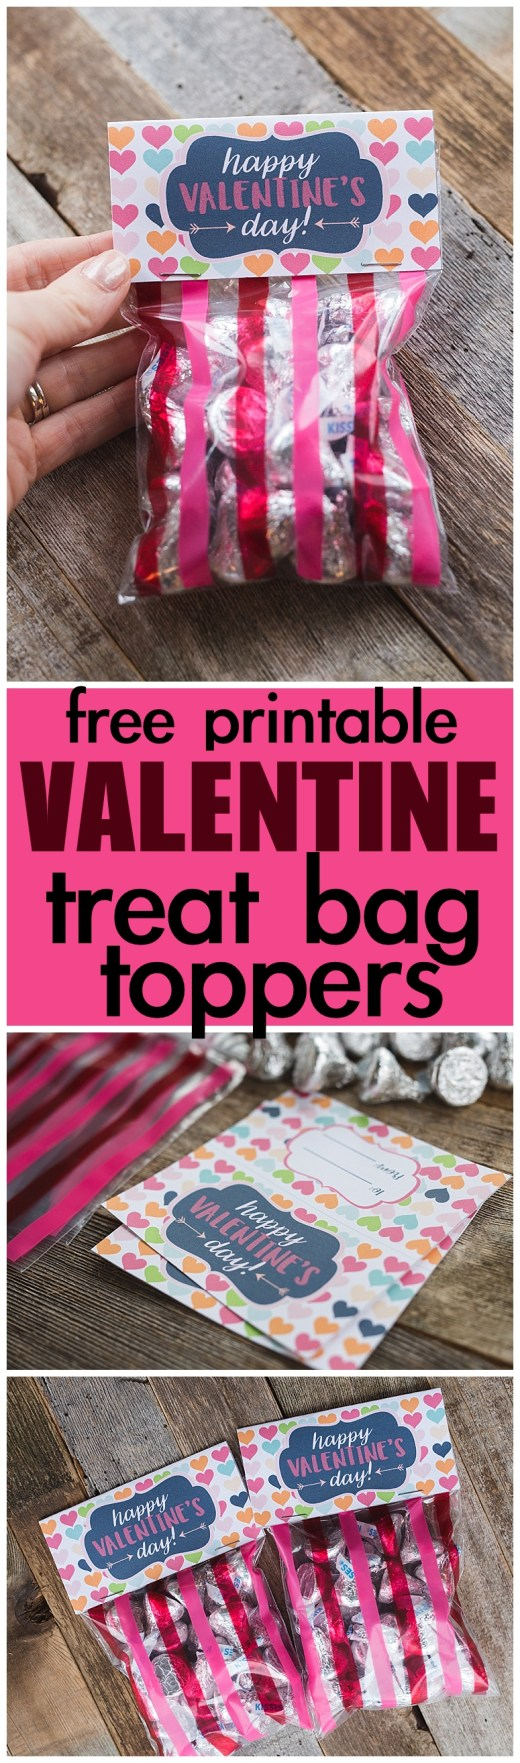 Free Printable Valentine's Day Treat Bag Toppers